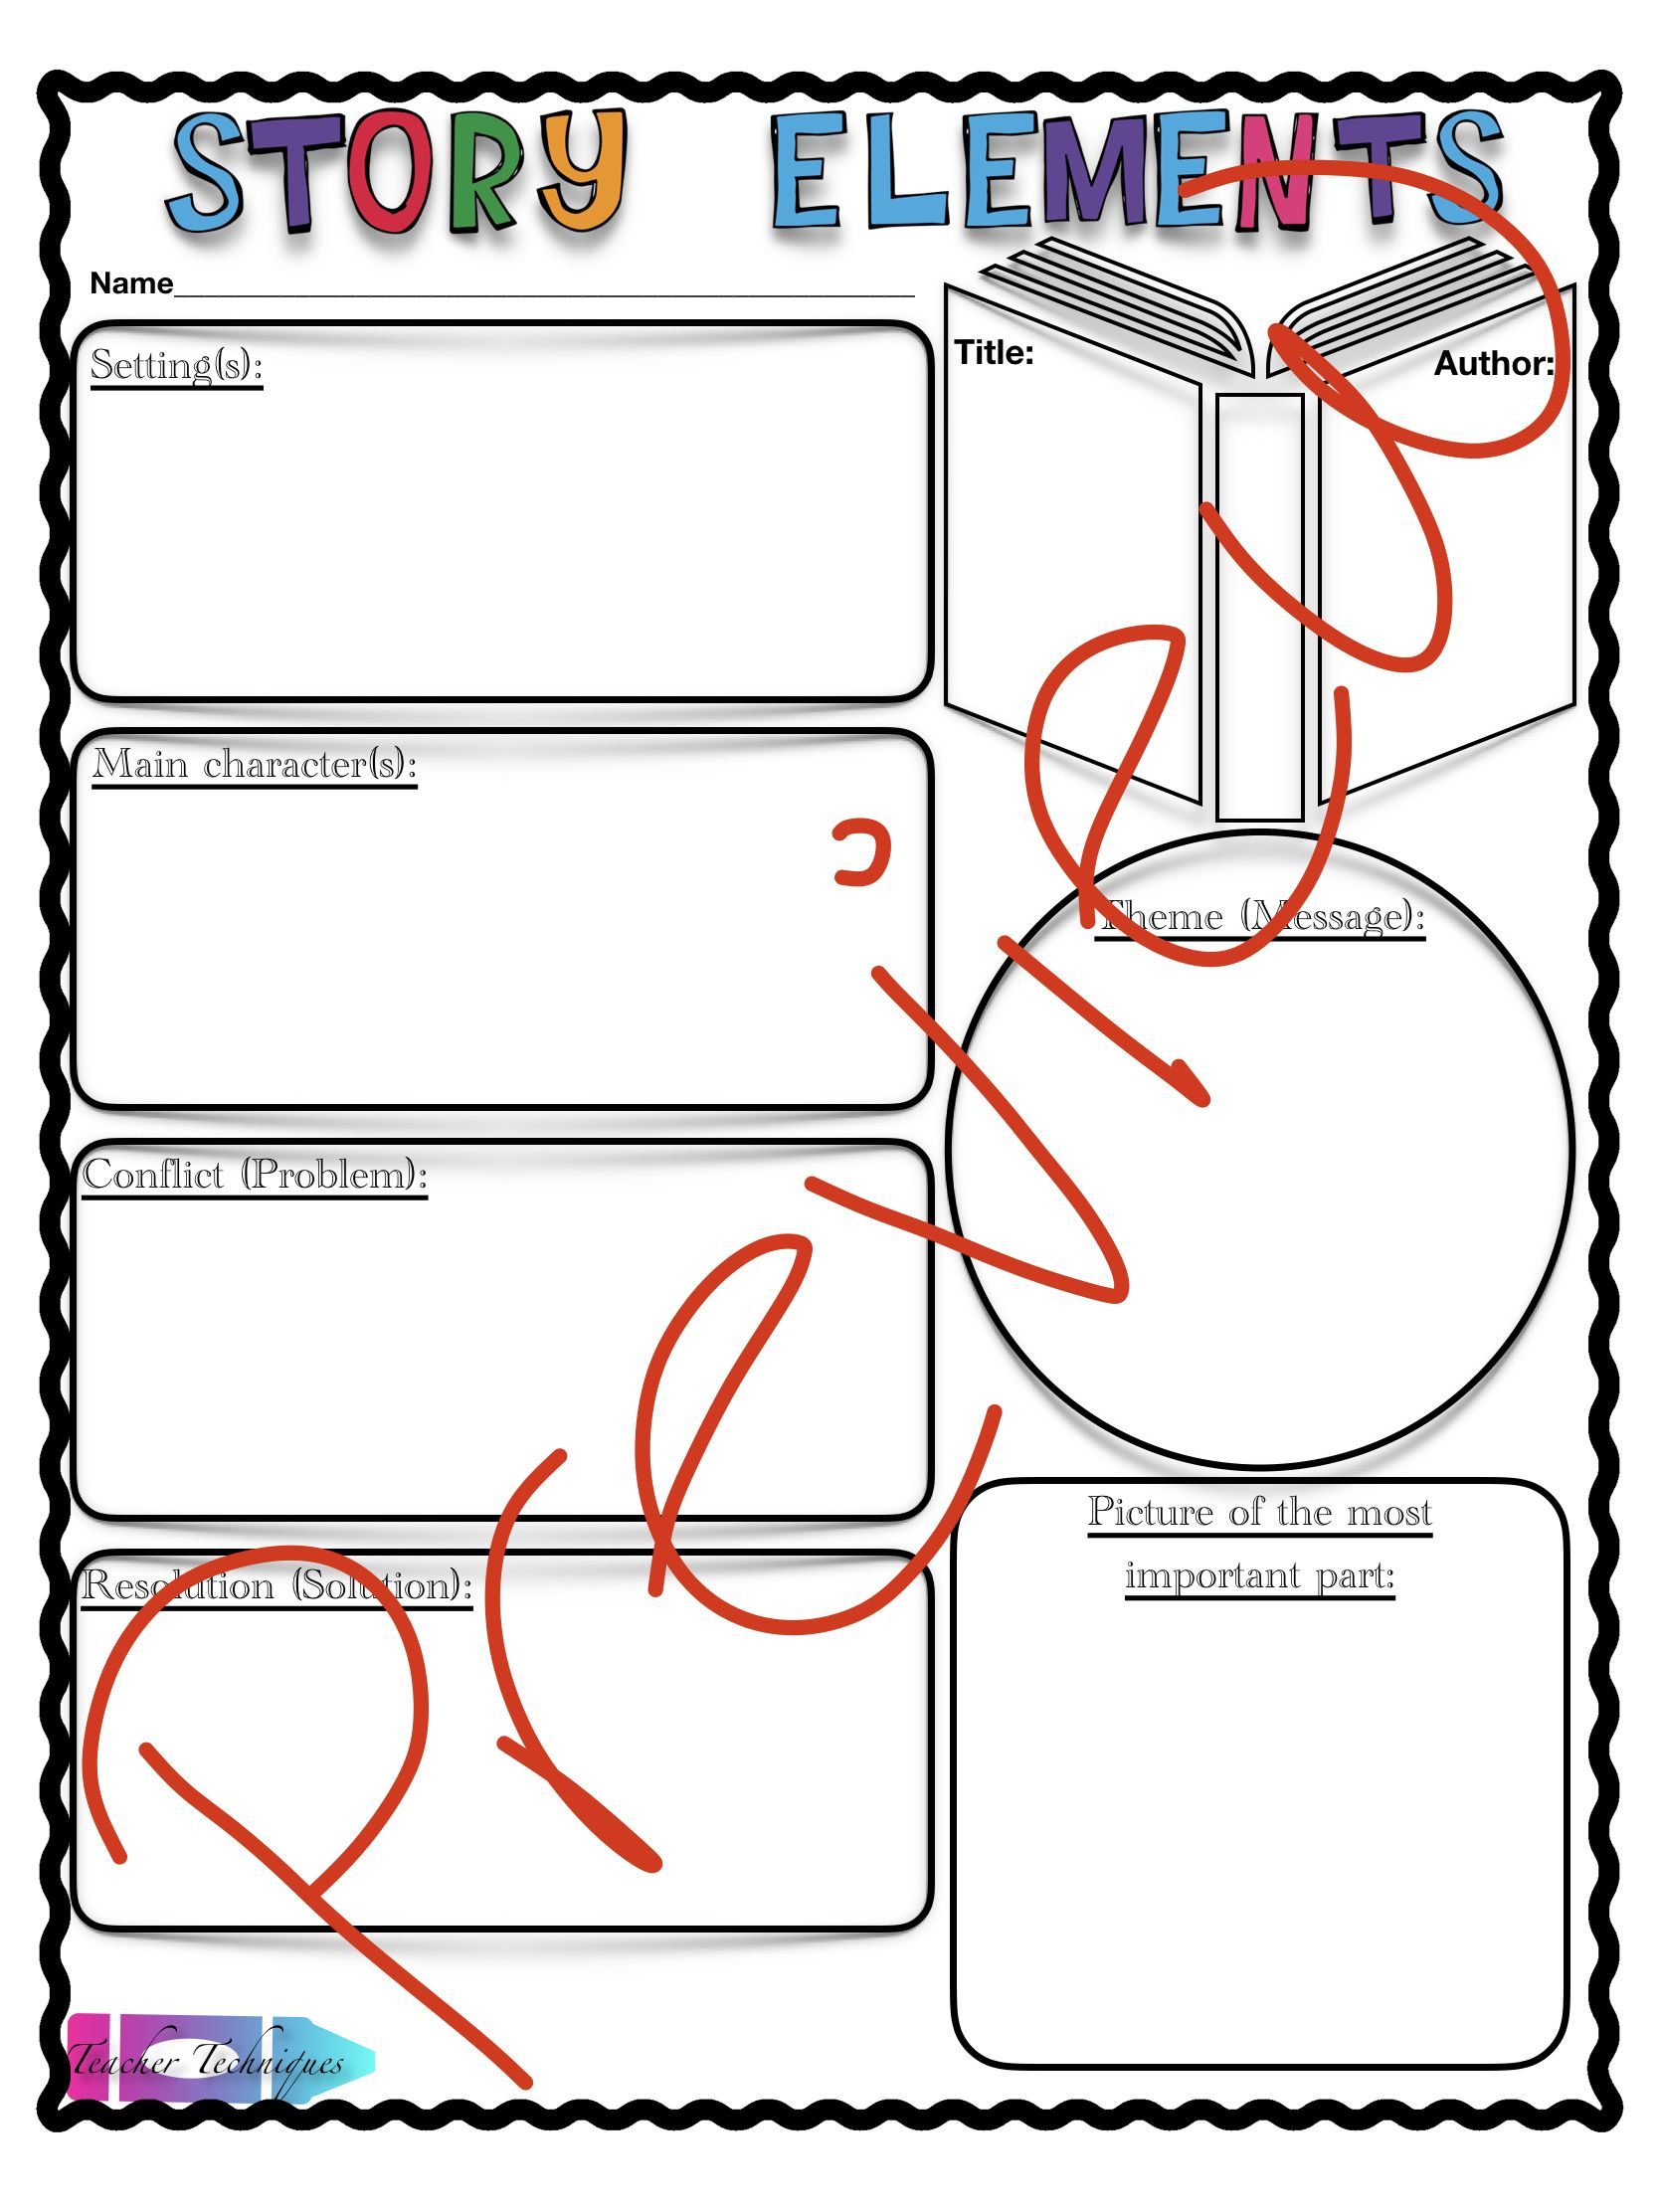 Story Element Definitions And Graphic Organizer Updated